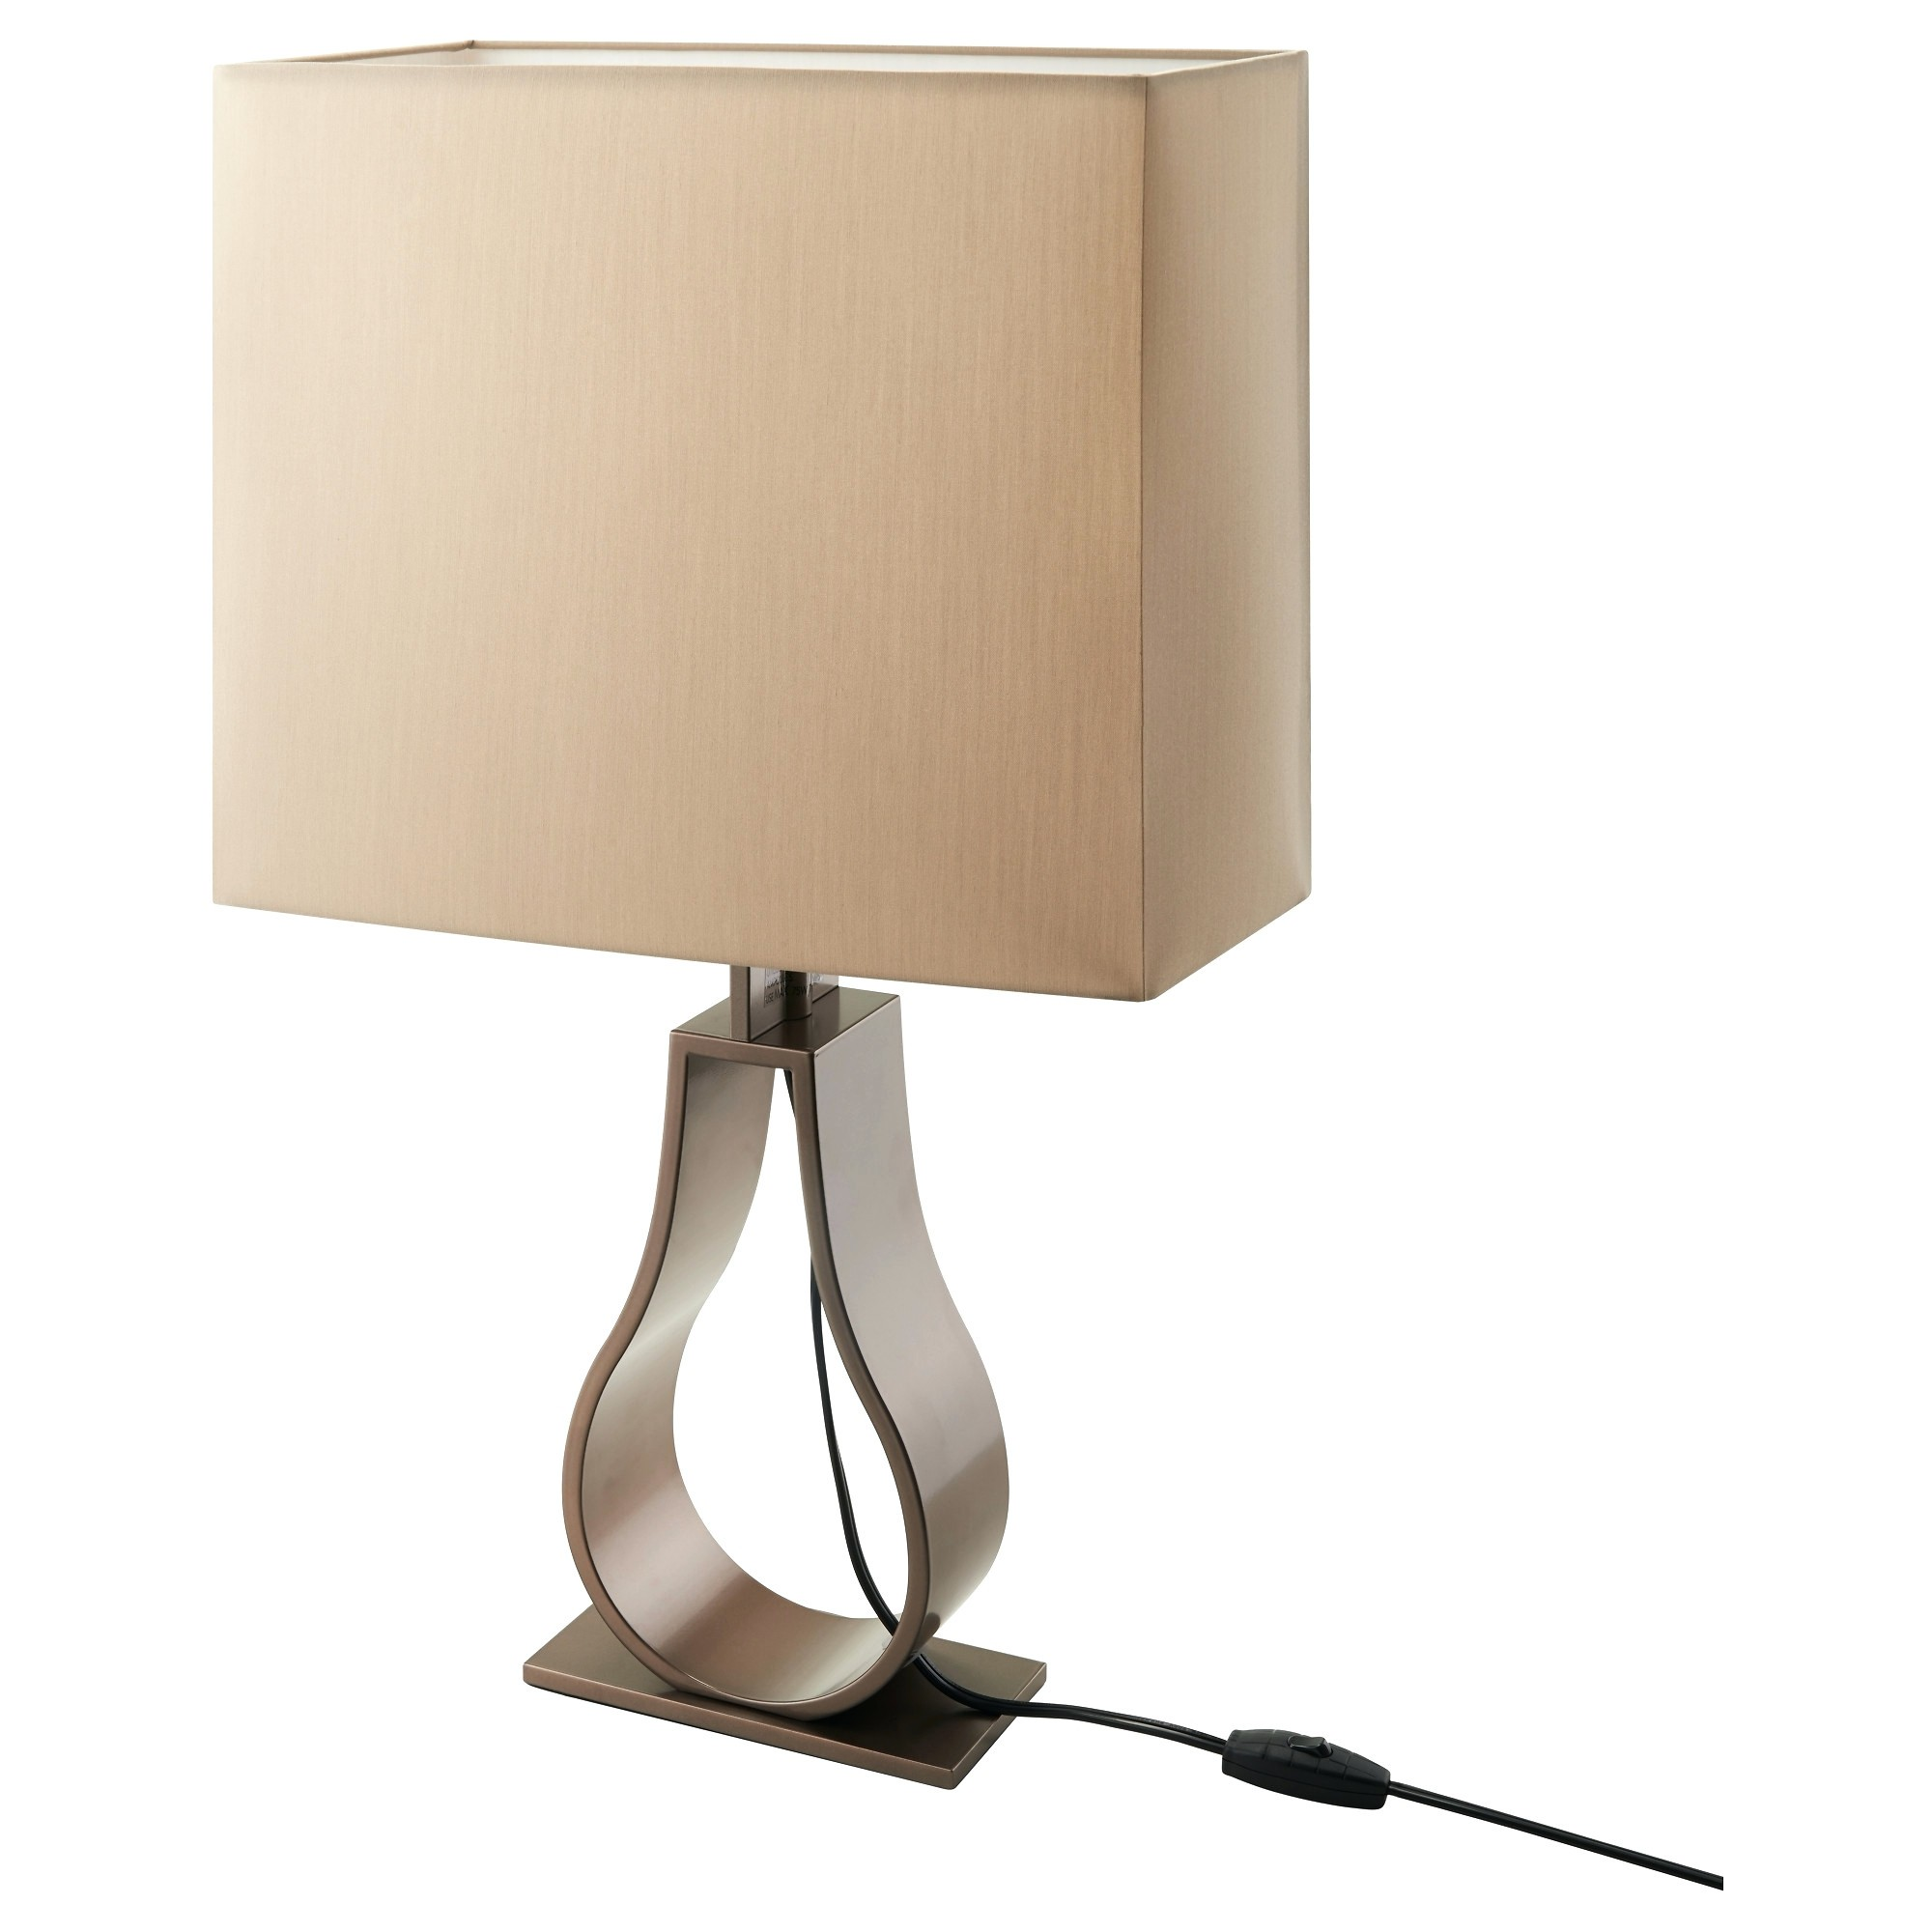 lamp table parts lamps with usb ports buffet luxury nightstands bedside port nightstand beautiful homeremodel electrical plug hotel desk built modern for living room heyburn